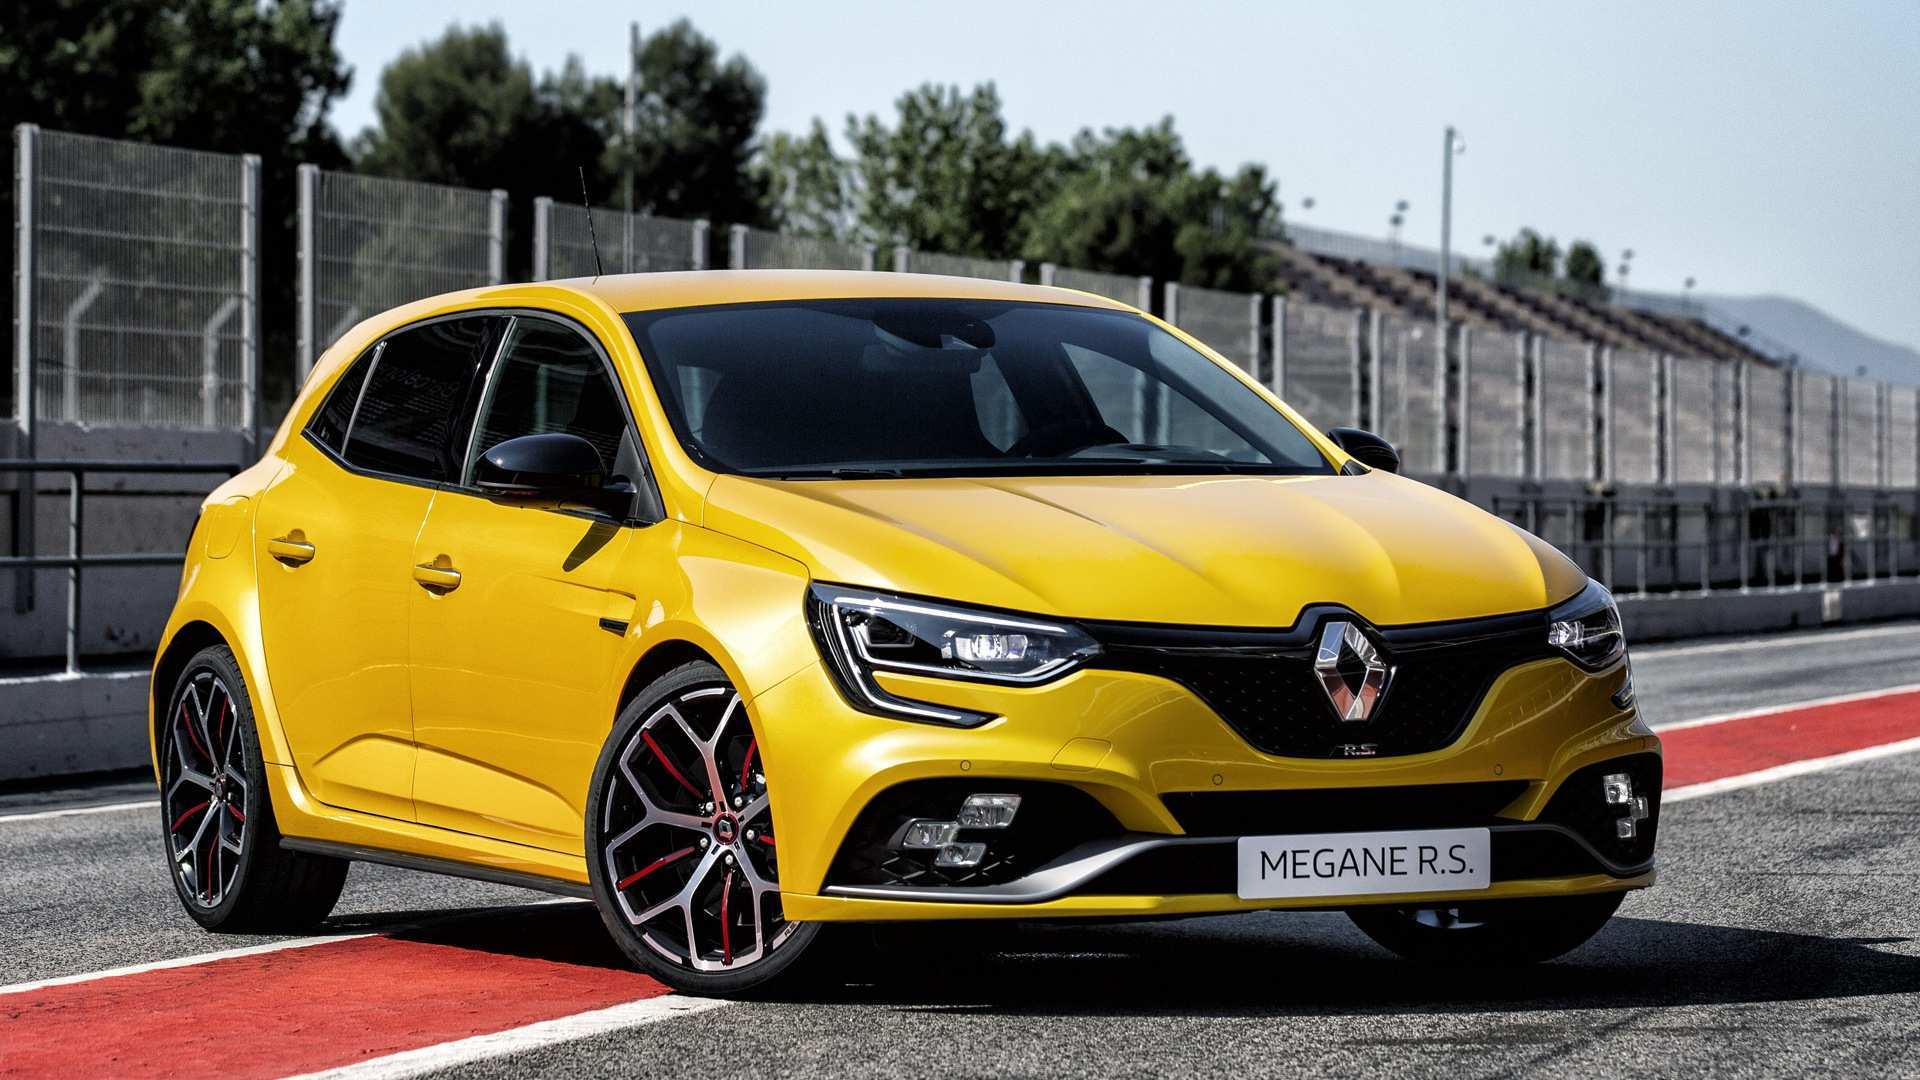 16 New 2019 Renault Megane Rs Exterior by 2019 Renault Megane Rs